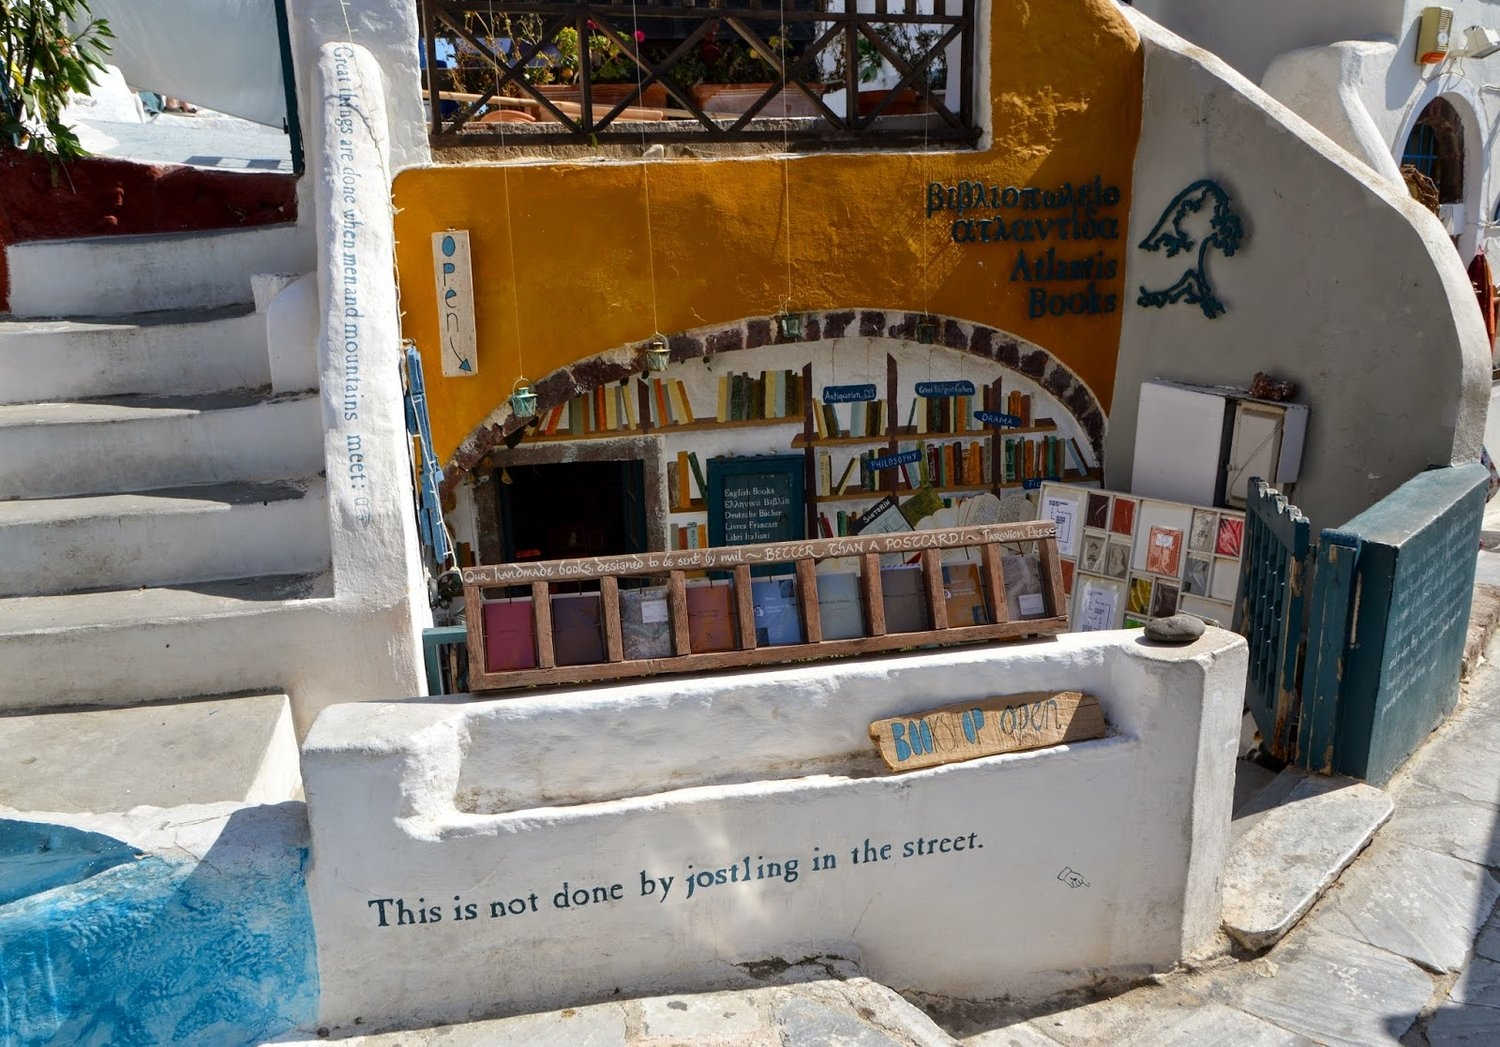 Atlantis Books is the Santorini Bookshop you never knew you needed in your life.